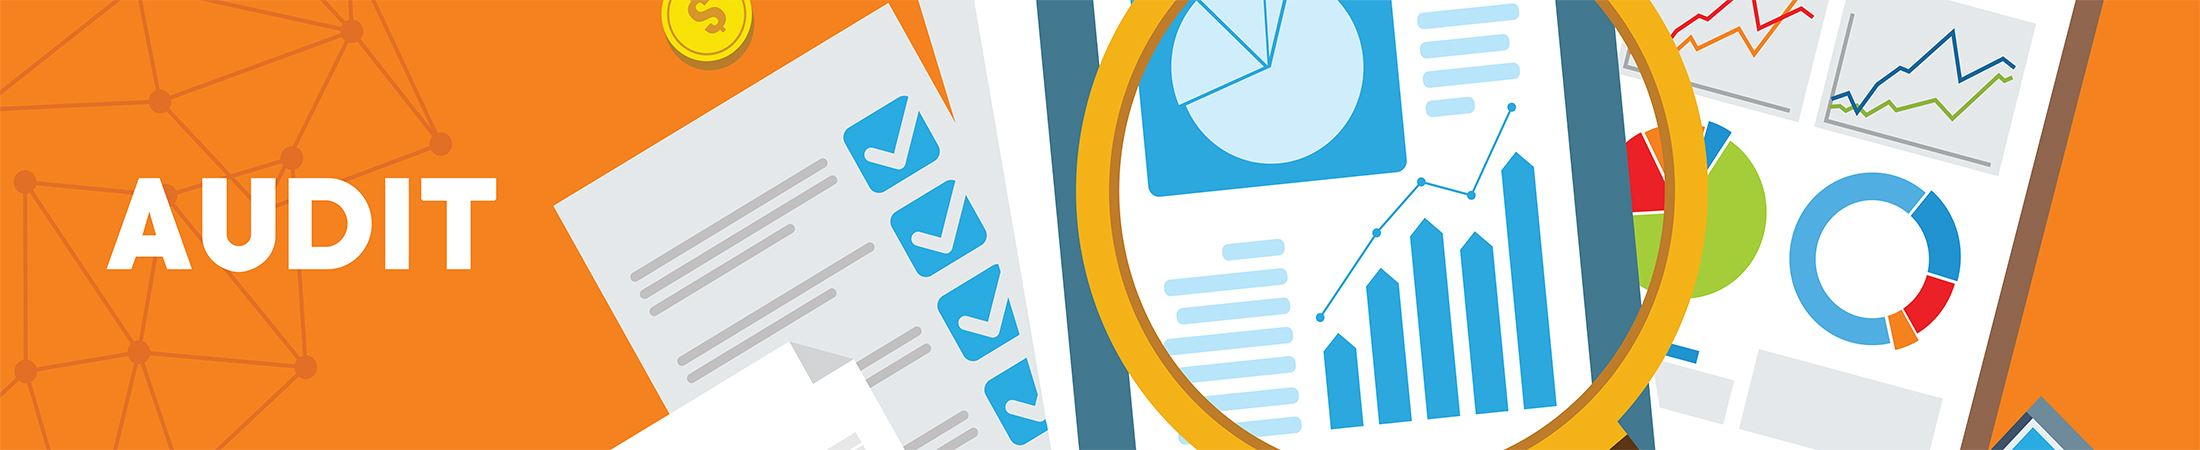 Audit Internal Banner graphic